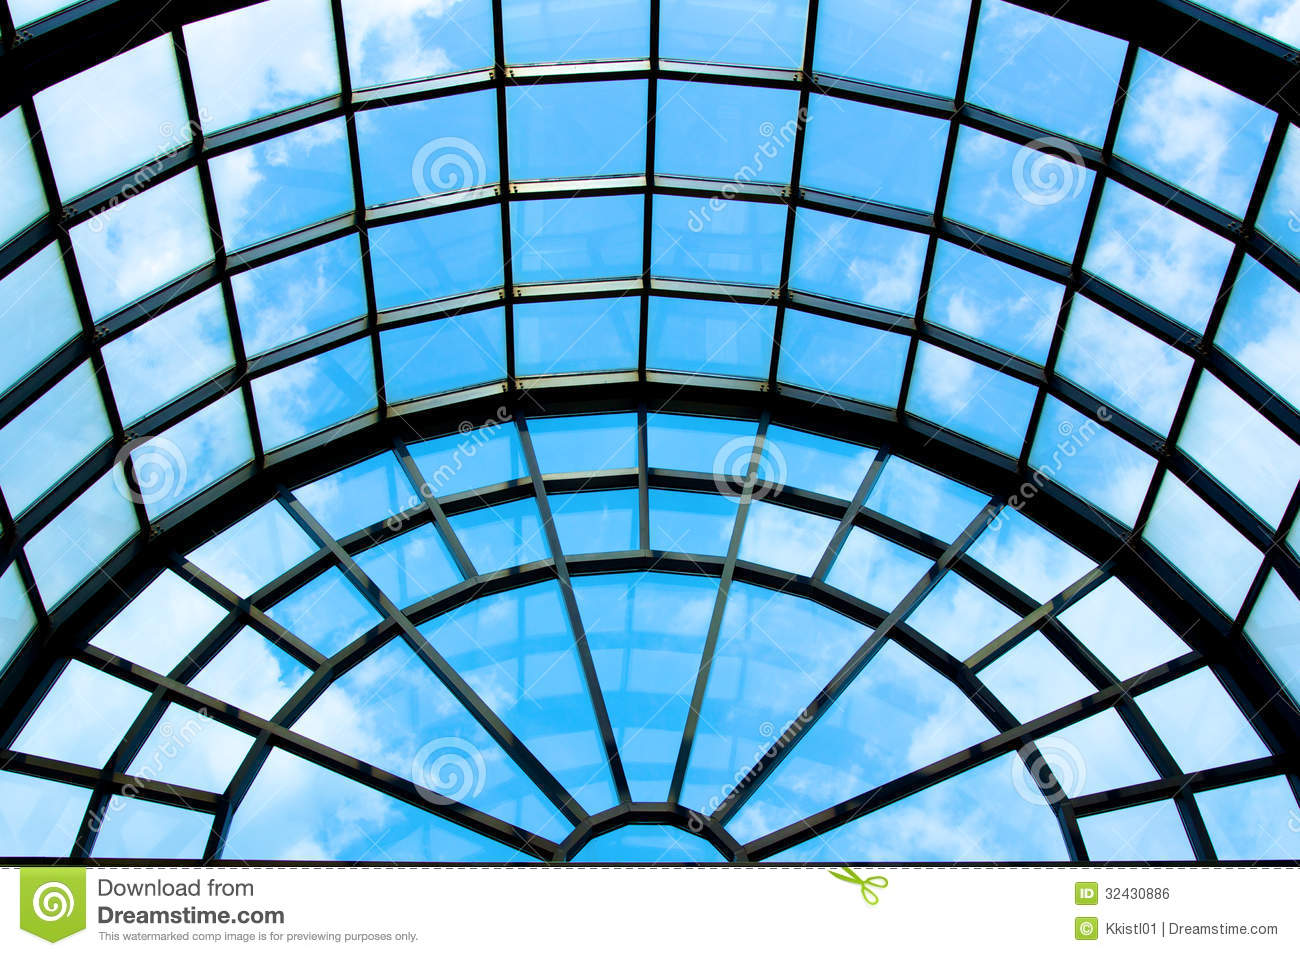 Arlington Visitor Center Roof Royalty Free Stock Image